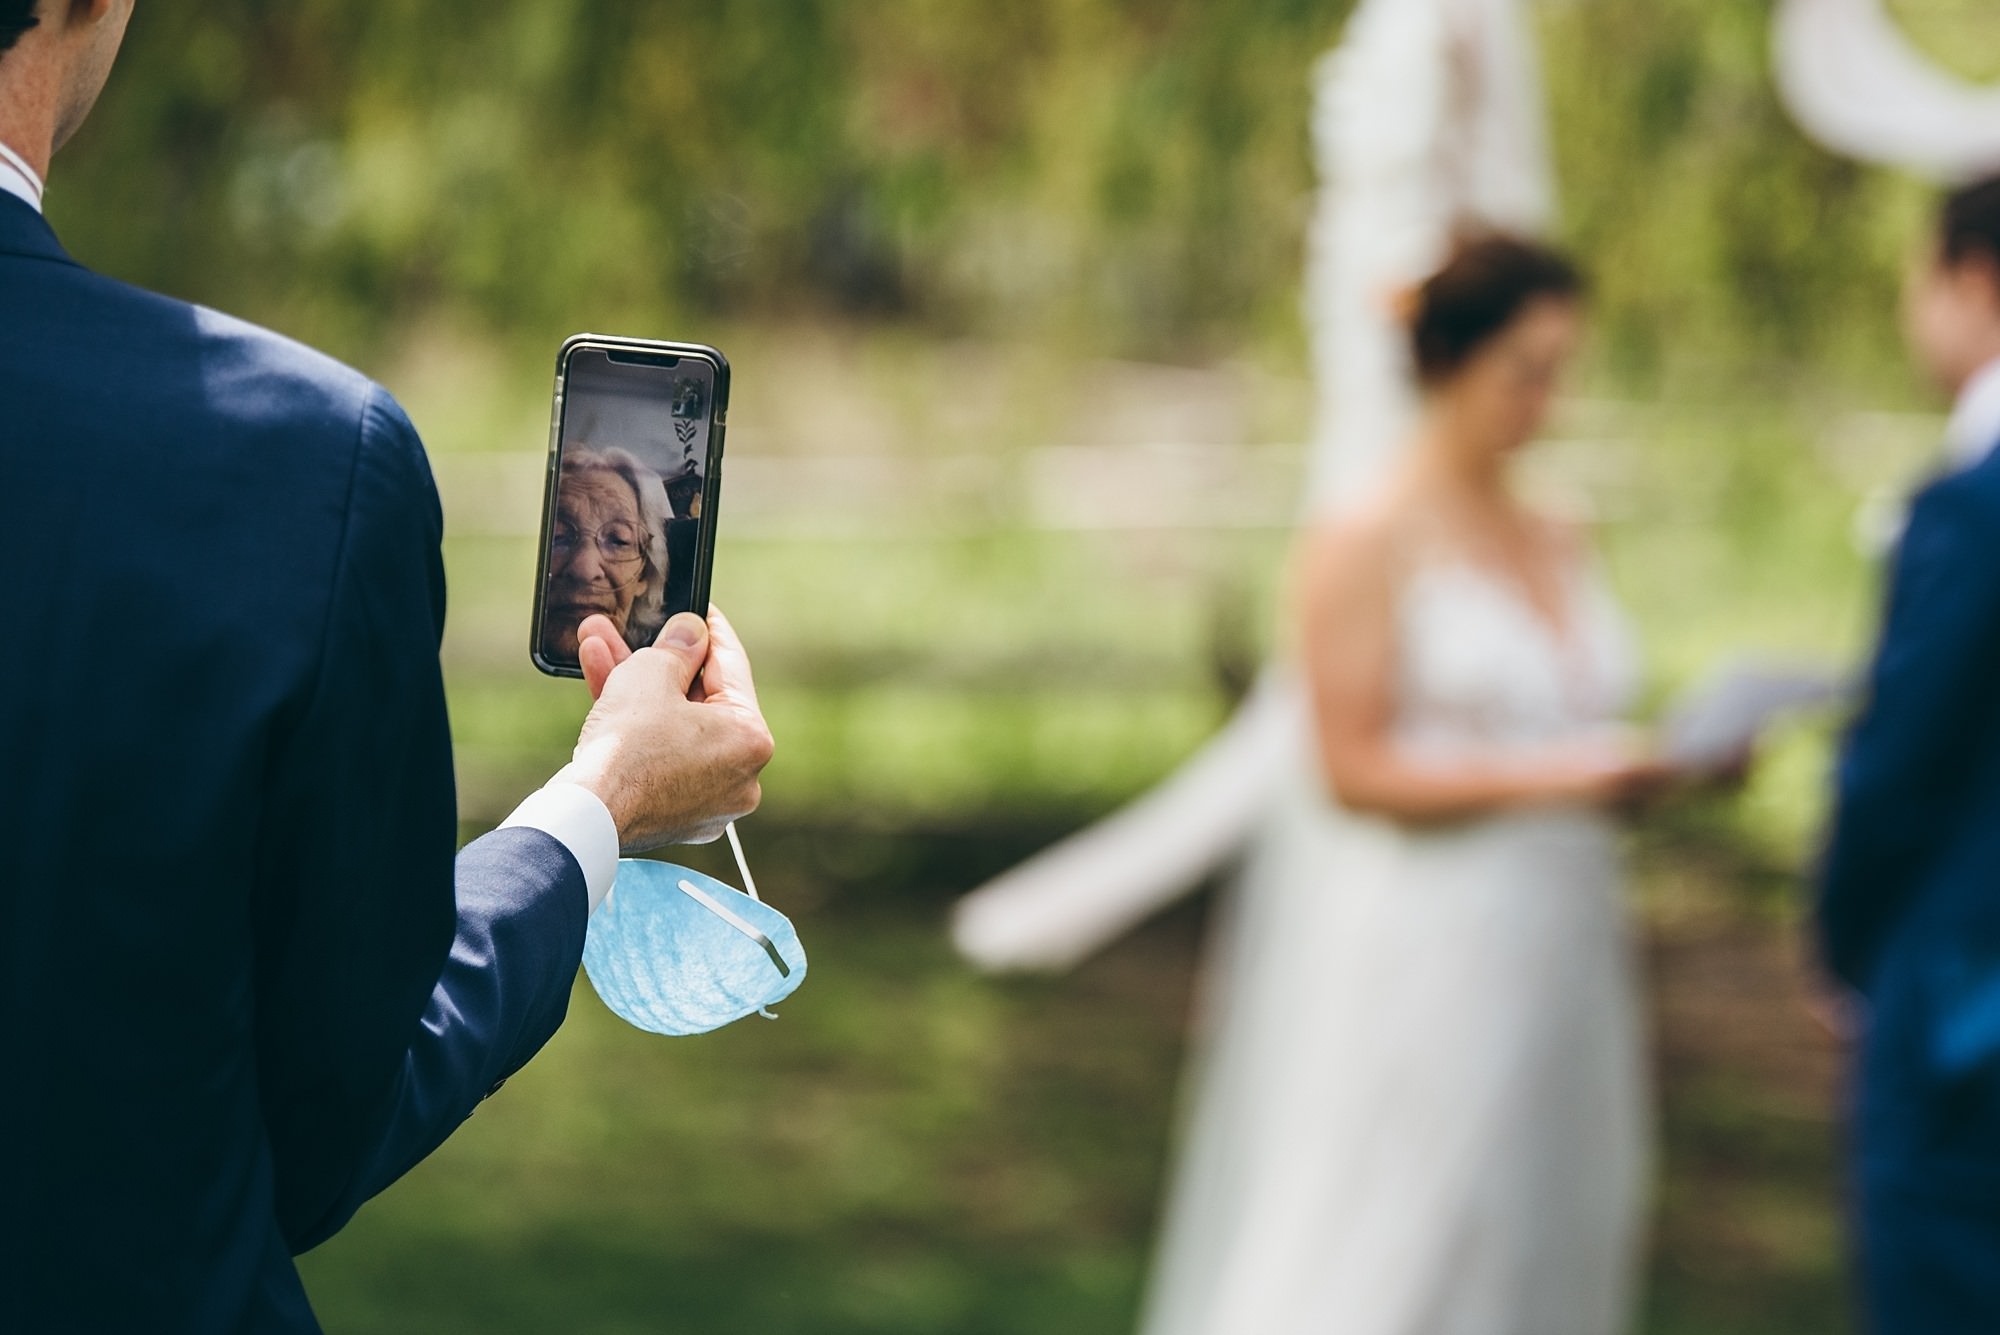 A grandmother attends the wedding ceremony via FaceTime